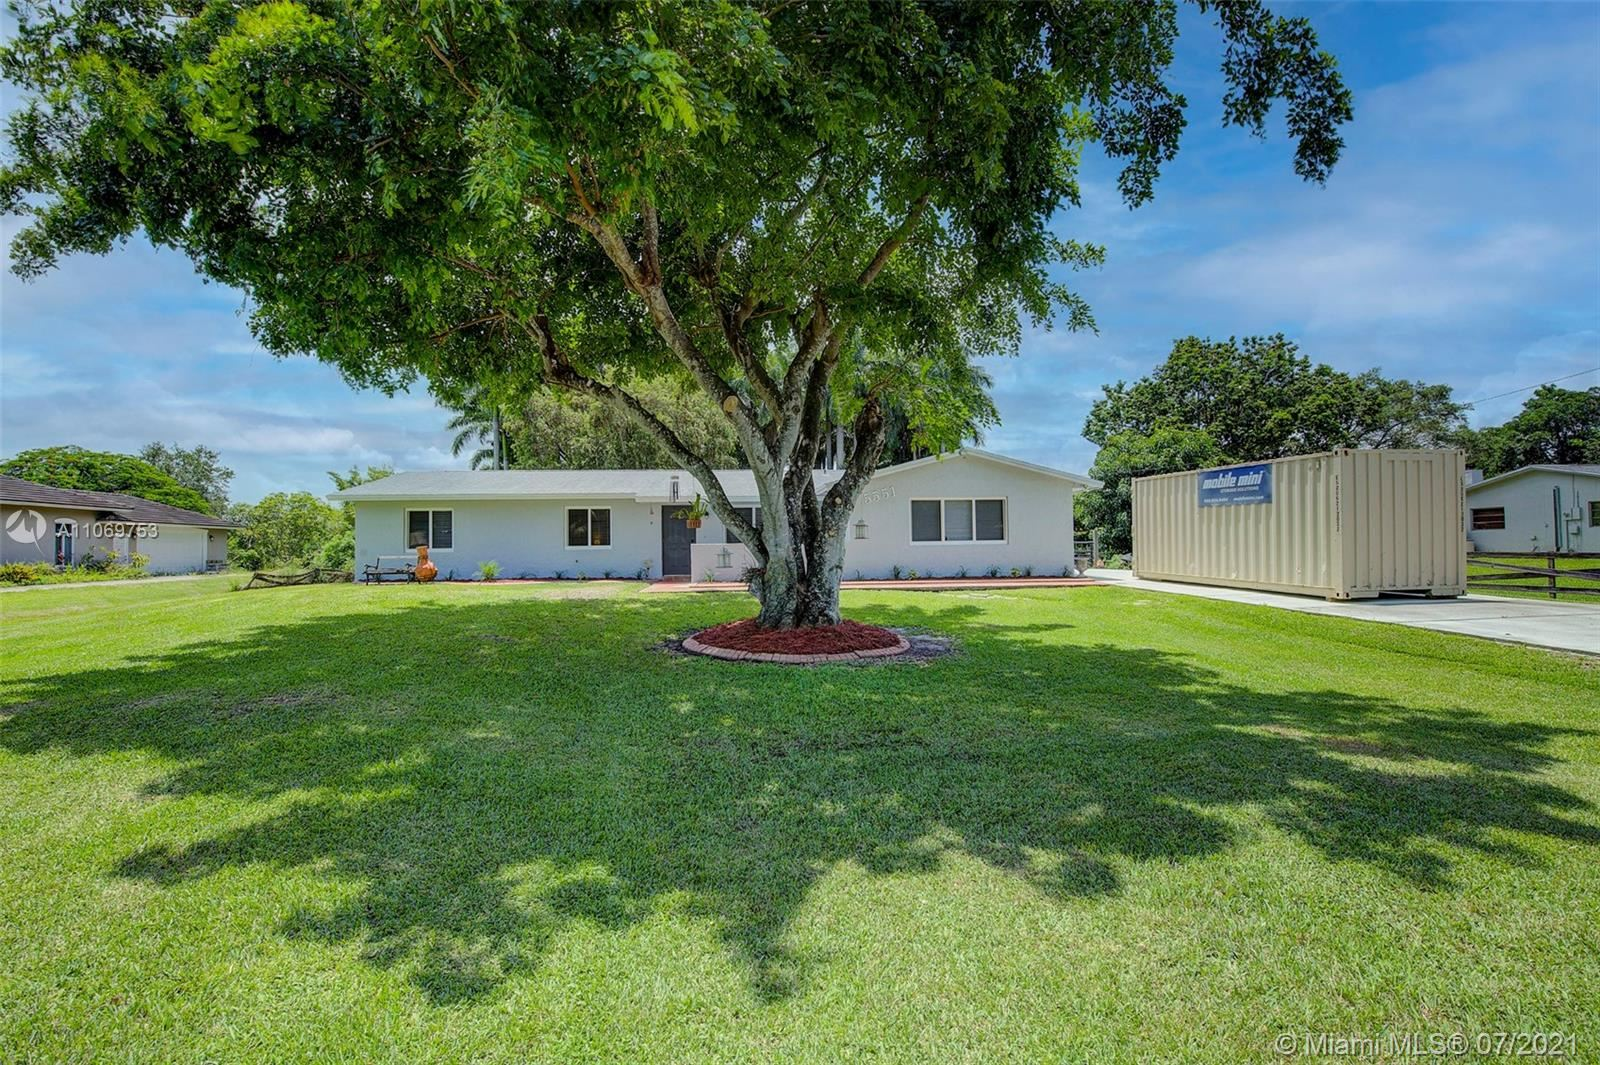 5551 SW 188th Ave, SouthWest Ranches, FL 33332 - #: A11069753